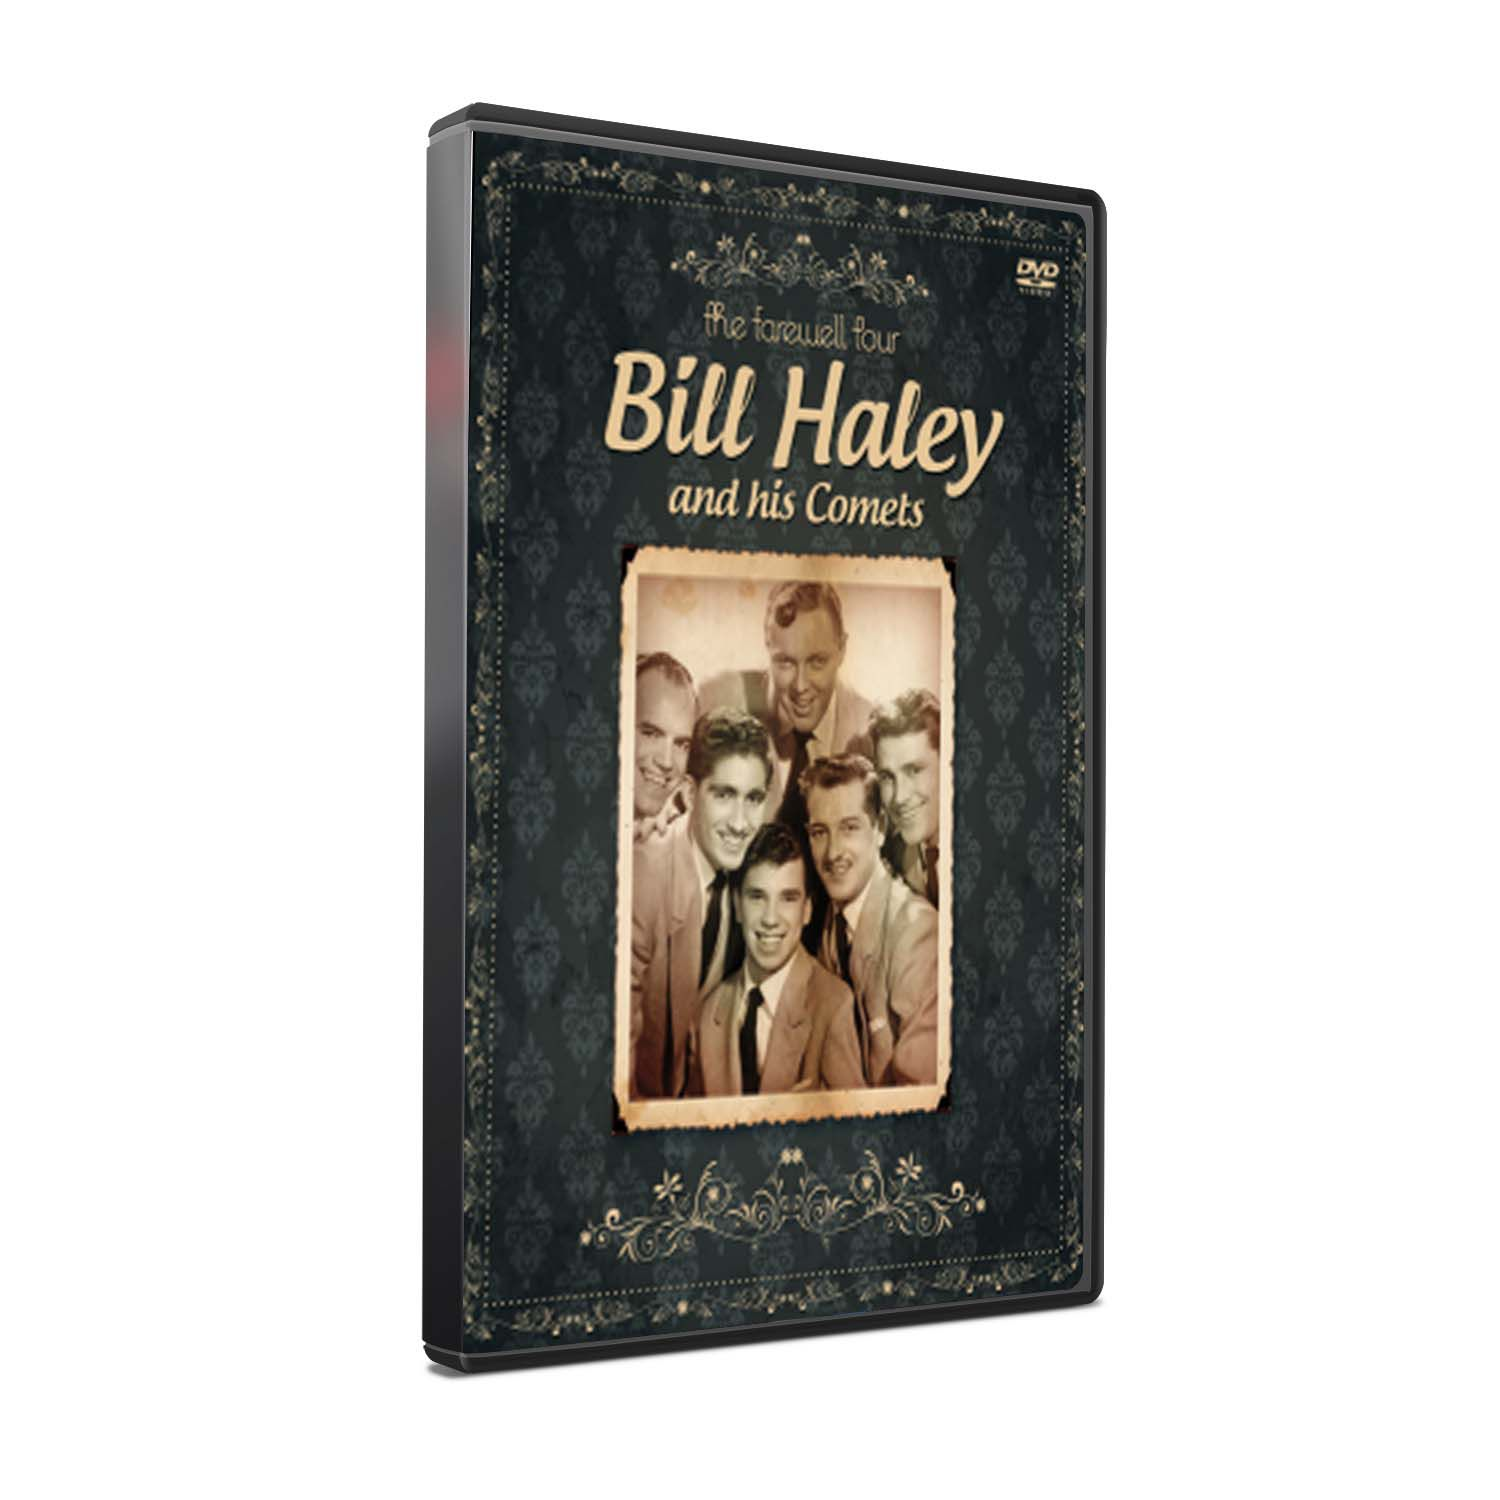 DVD BILL HALEY AND HIS COMETS - THE FAREWELL TOUR